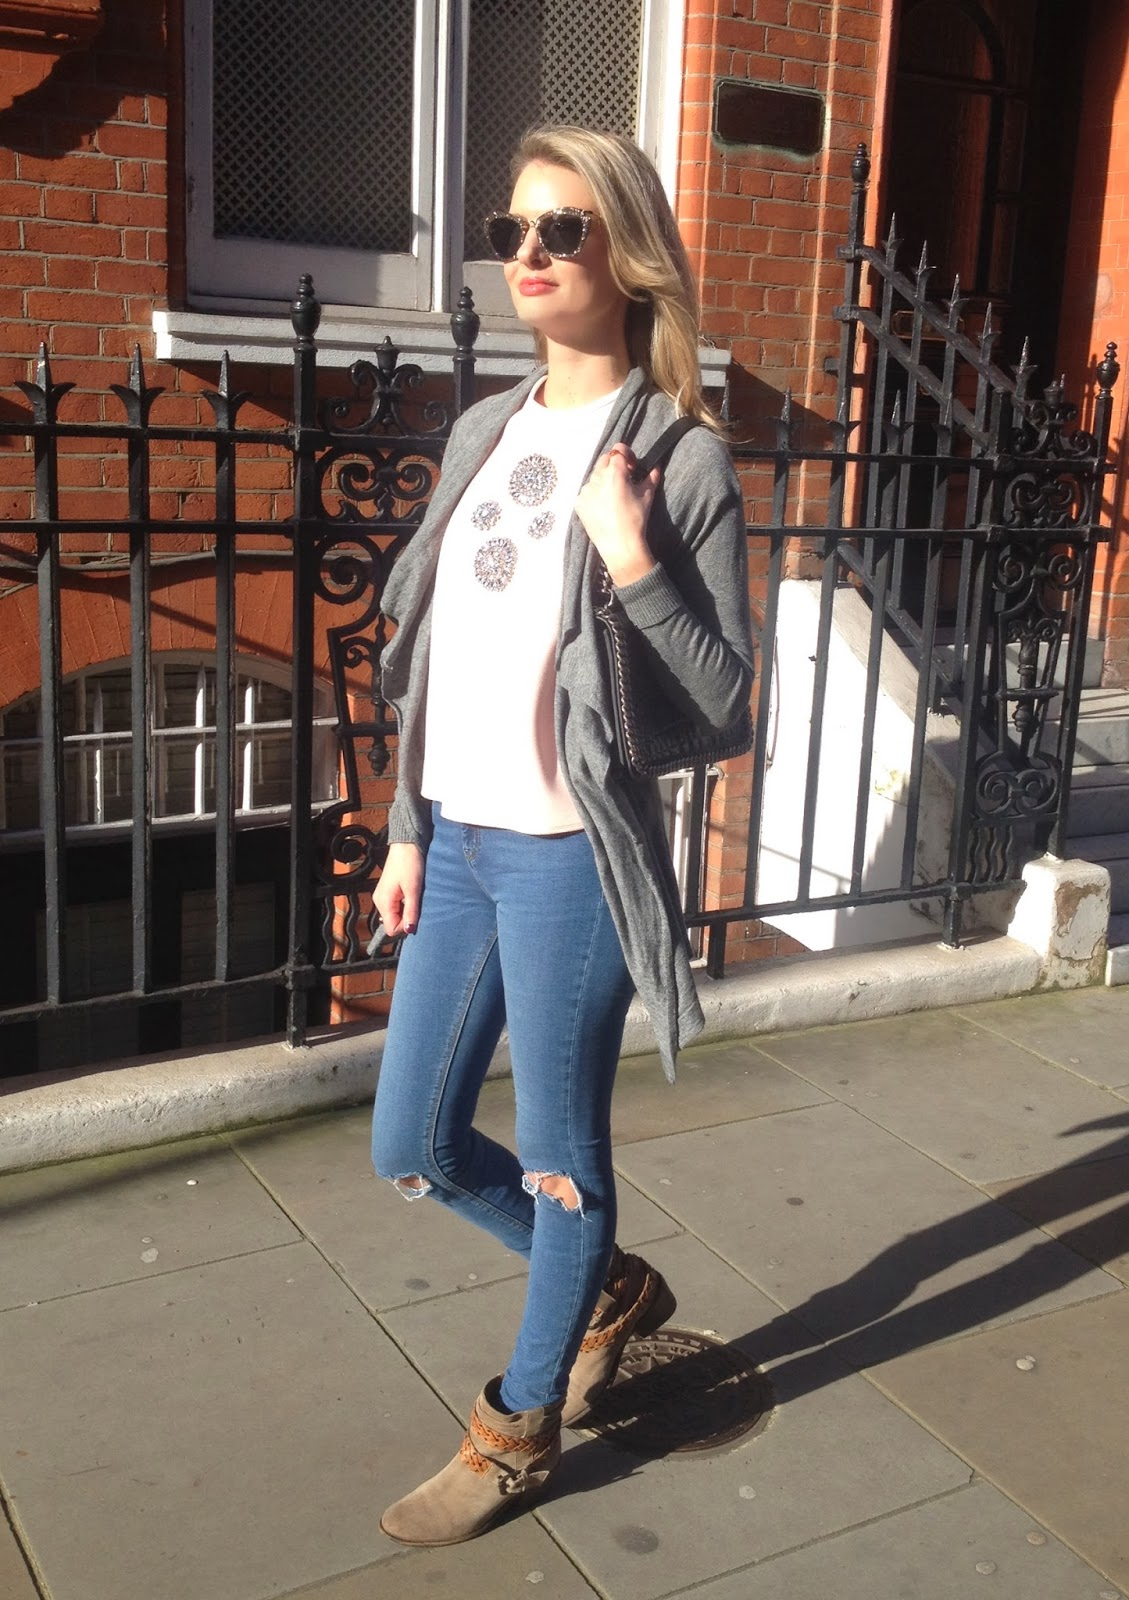 embelished top, embelished zara top, London, London street style, miu miu, miu miu sunglasses, miu miu glitter, miu miu glitter sunglasses, miu miu cat eye sunglasses, zara, zara top, zara t-shirt, zara look book 2014, asos, asos jeans, asos skinny jeans, asos ripped jeans, asos ridley jeans, zara bag, zara crocodile bag, chrissabella, fashion blogger, london blogger